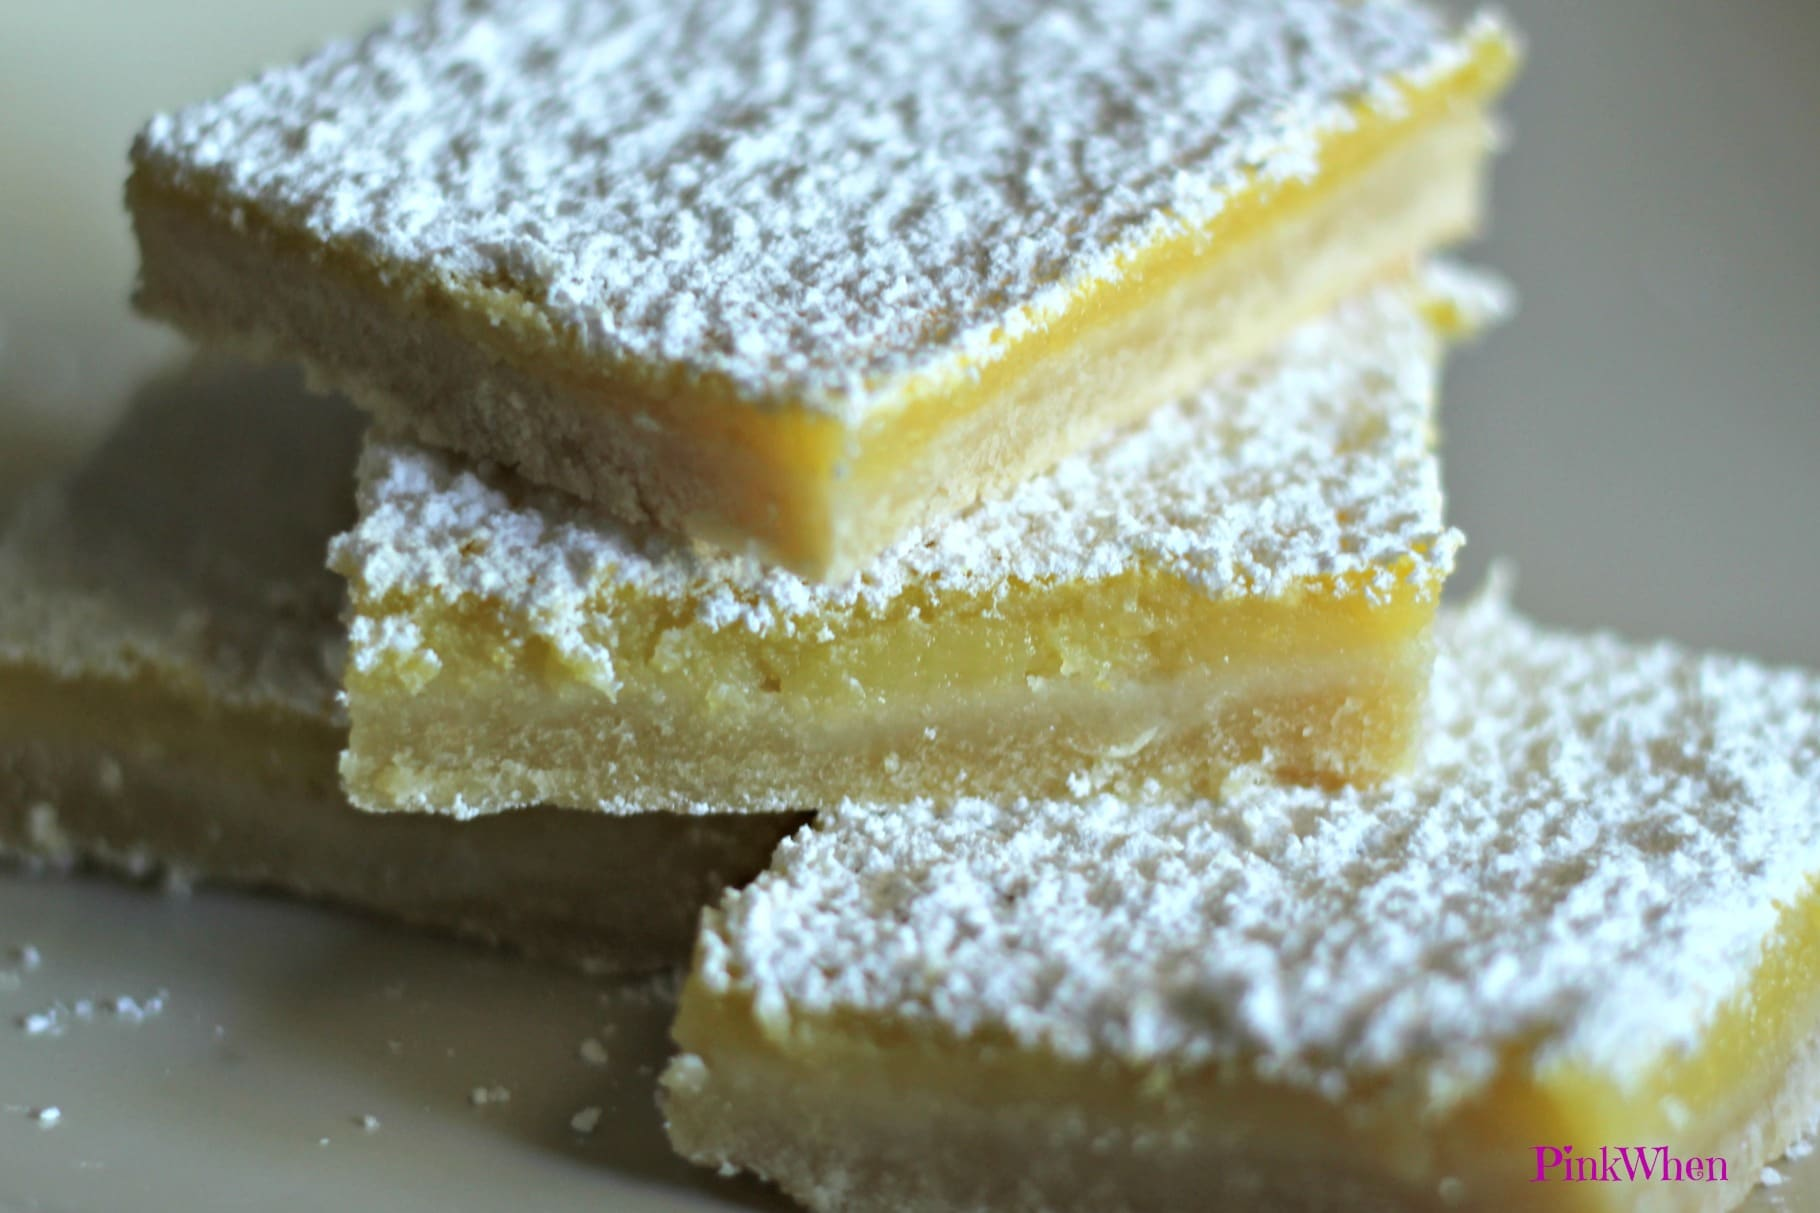 The BEST Lemon Bars Recipe - PinkWhen